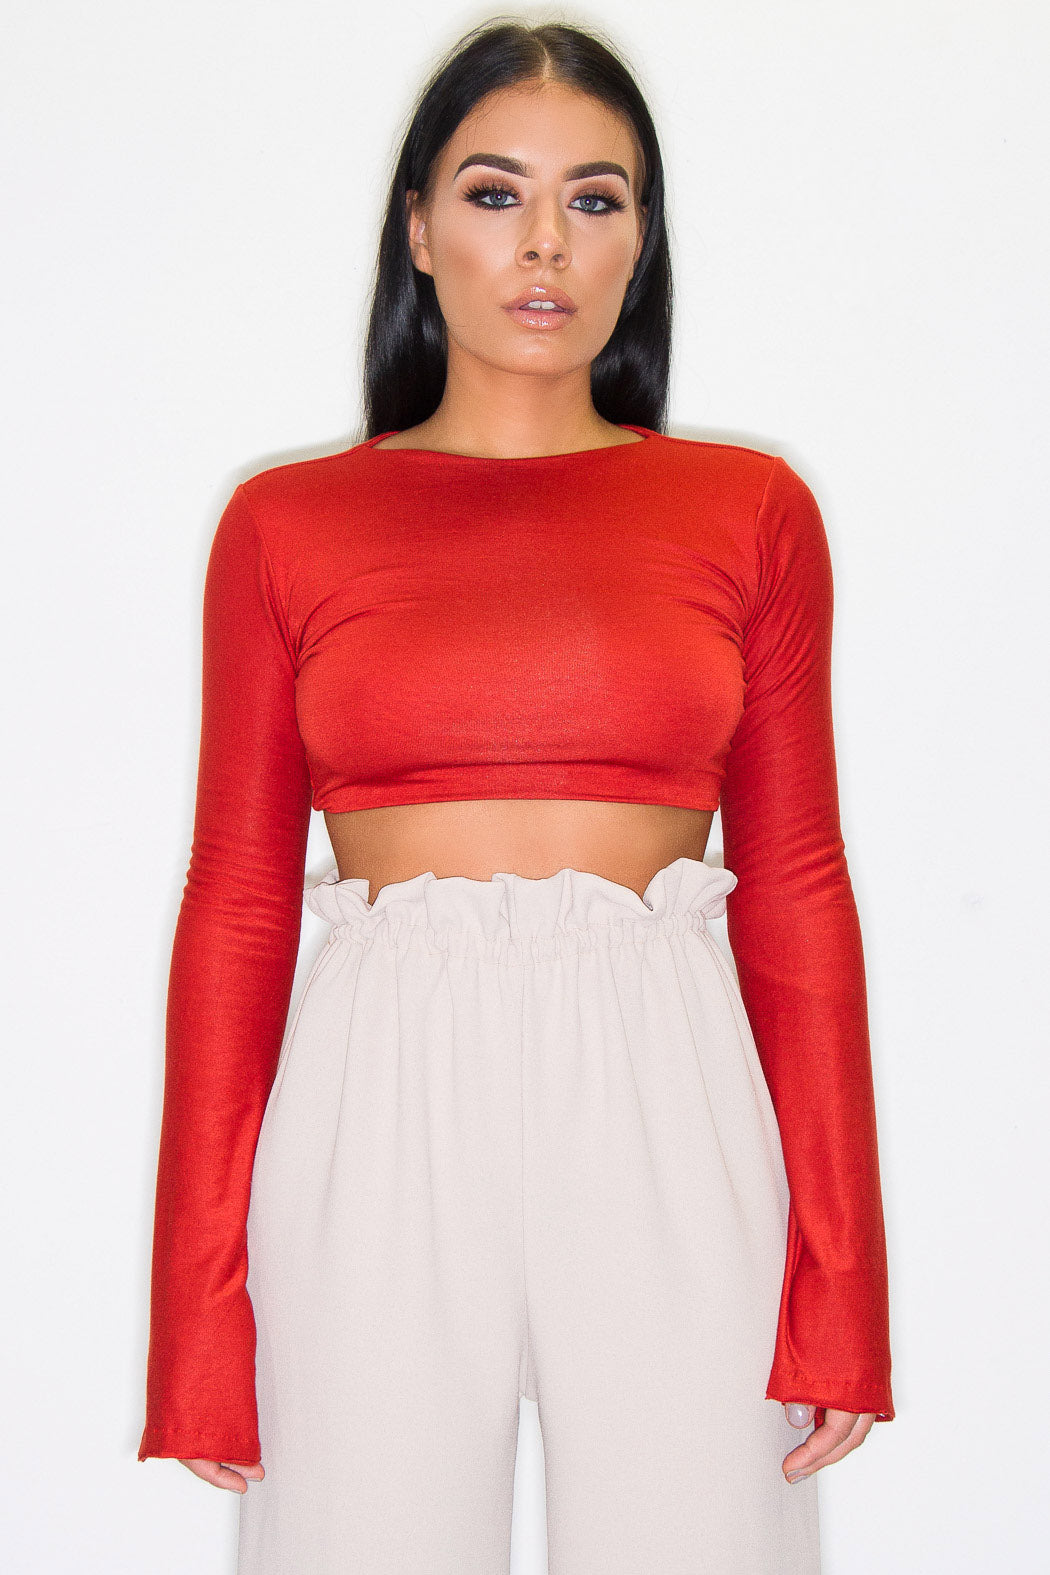 RAF BELL SLEEVE TOP RUST